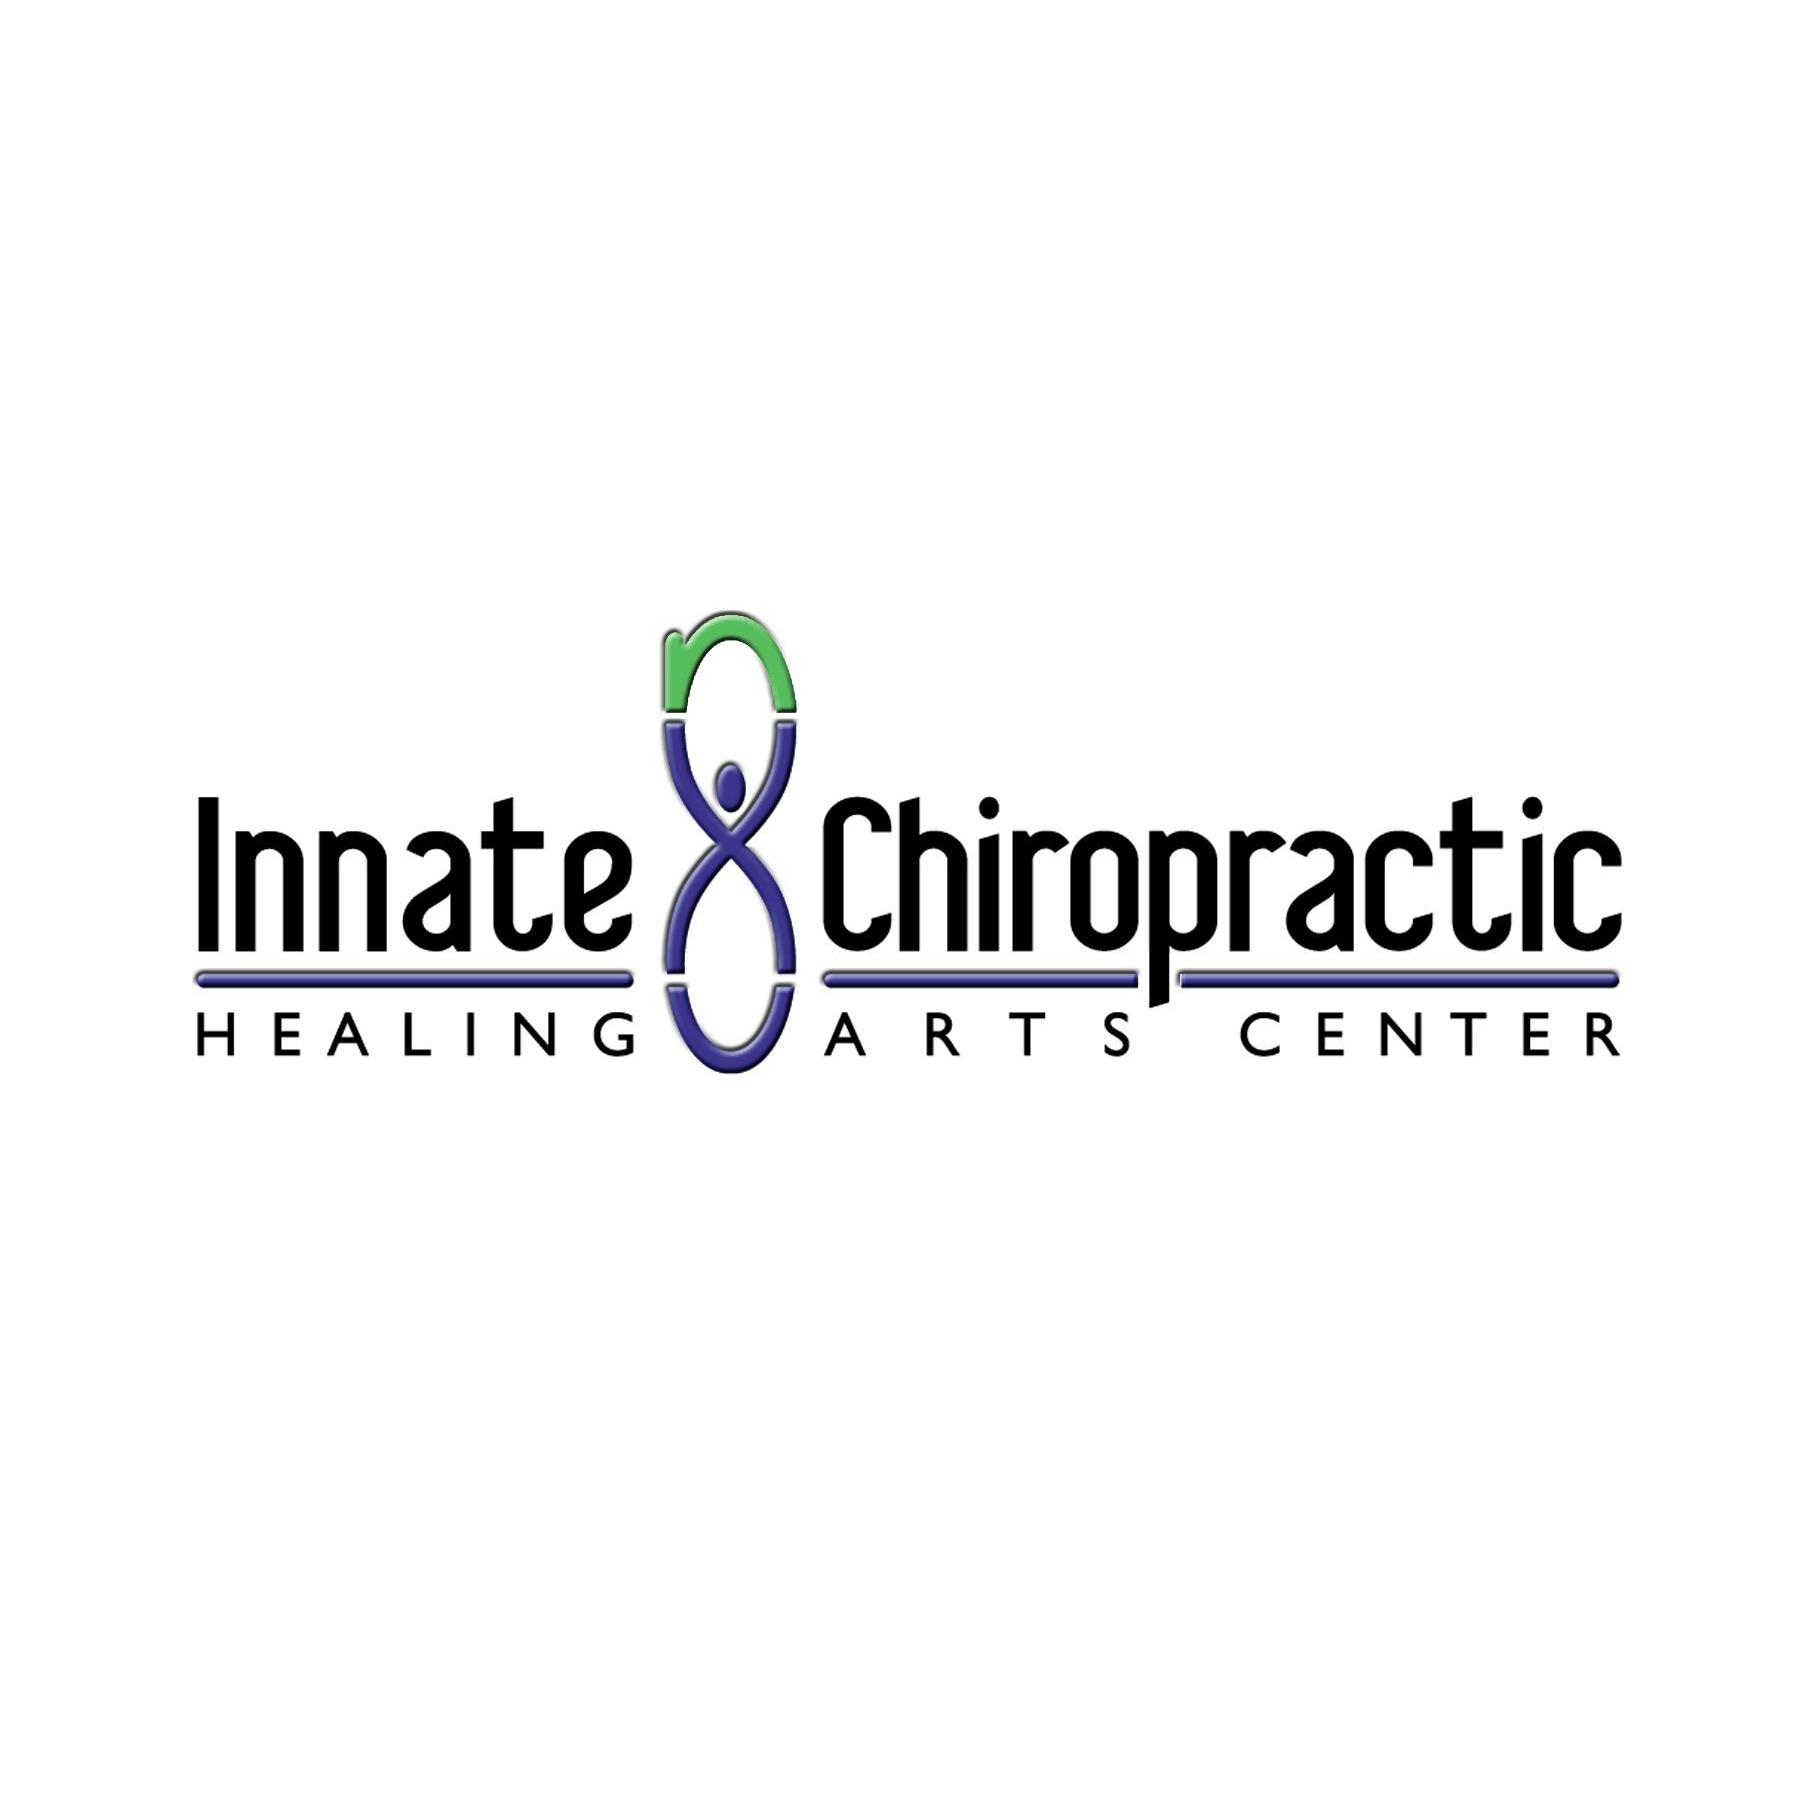 Innate Chiropractic Healing Arts Center